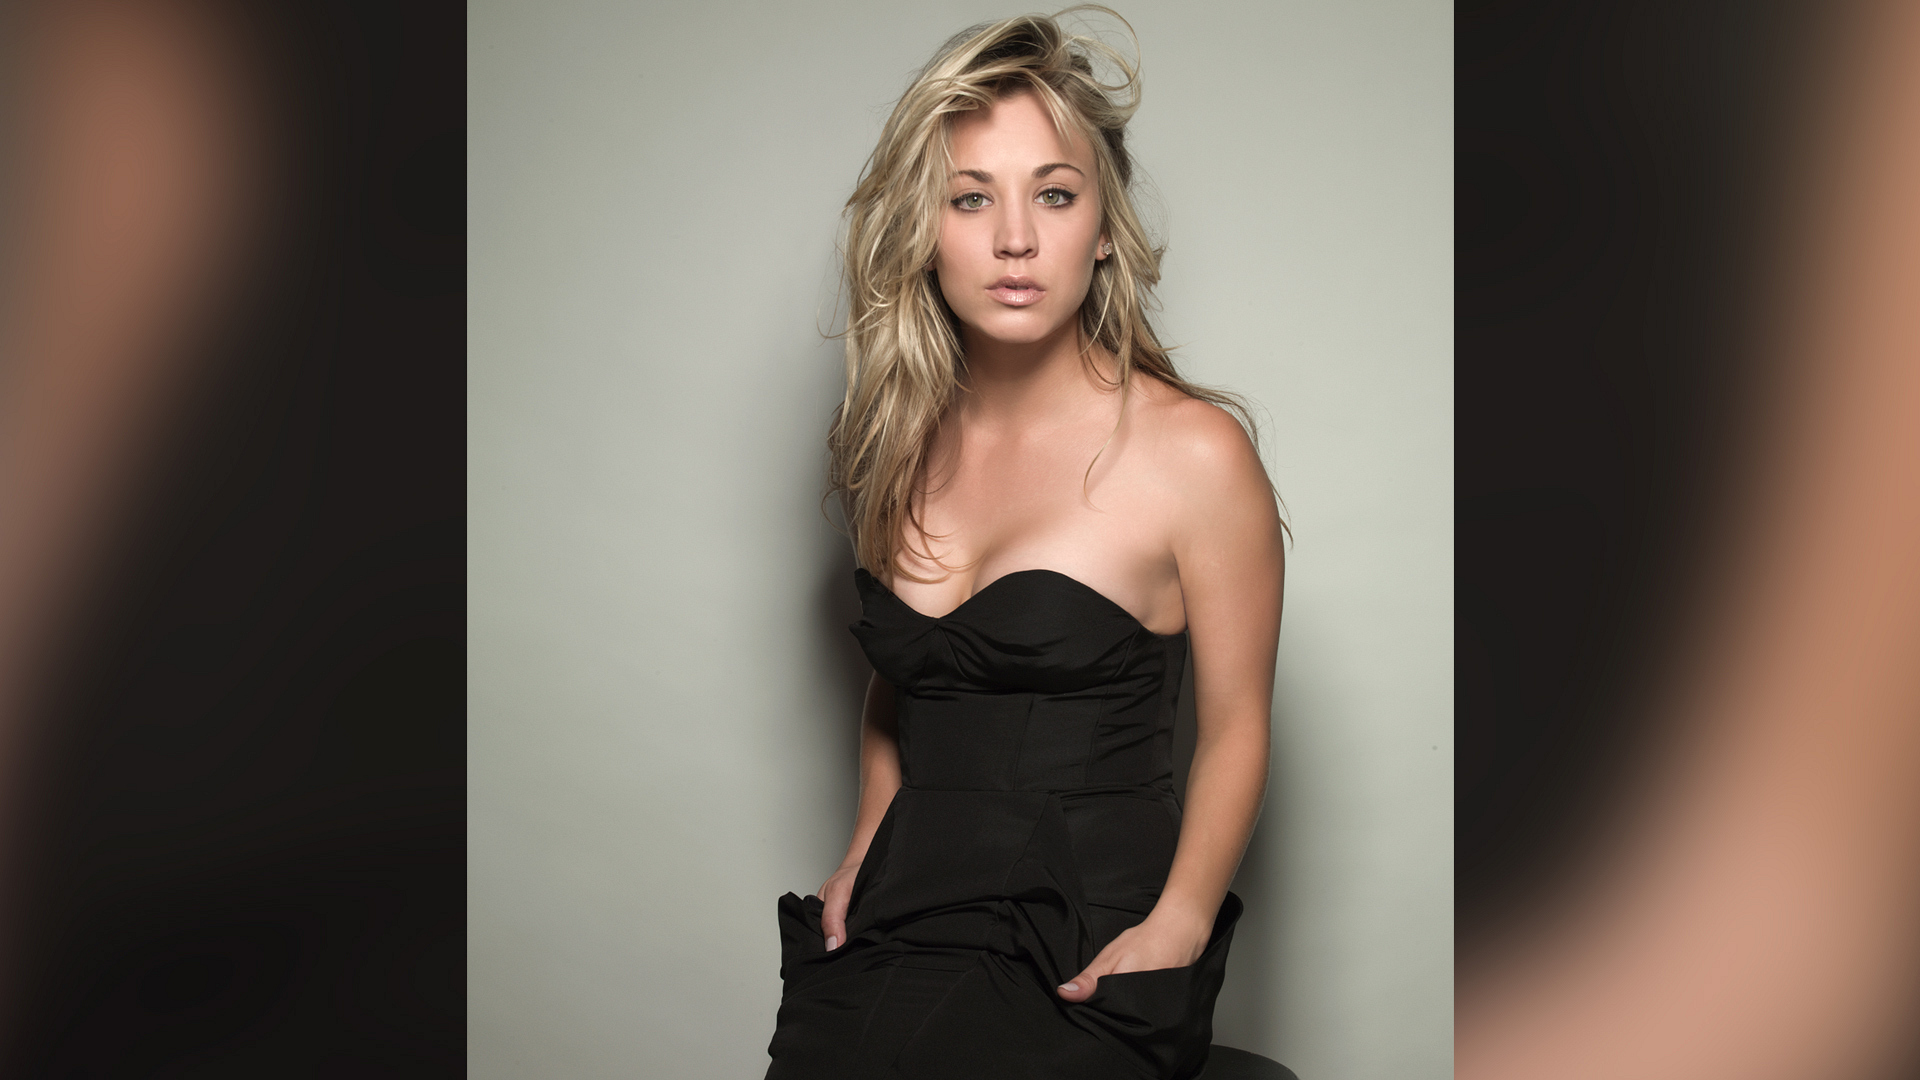 Kaley Cuoco naked - free pictures and videos at